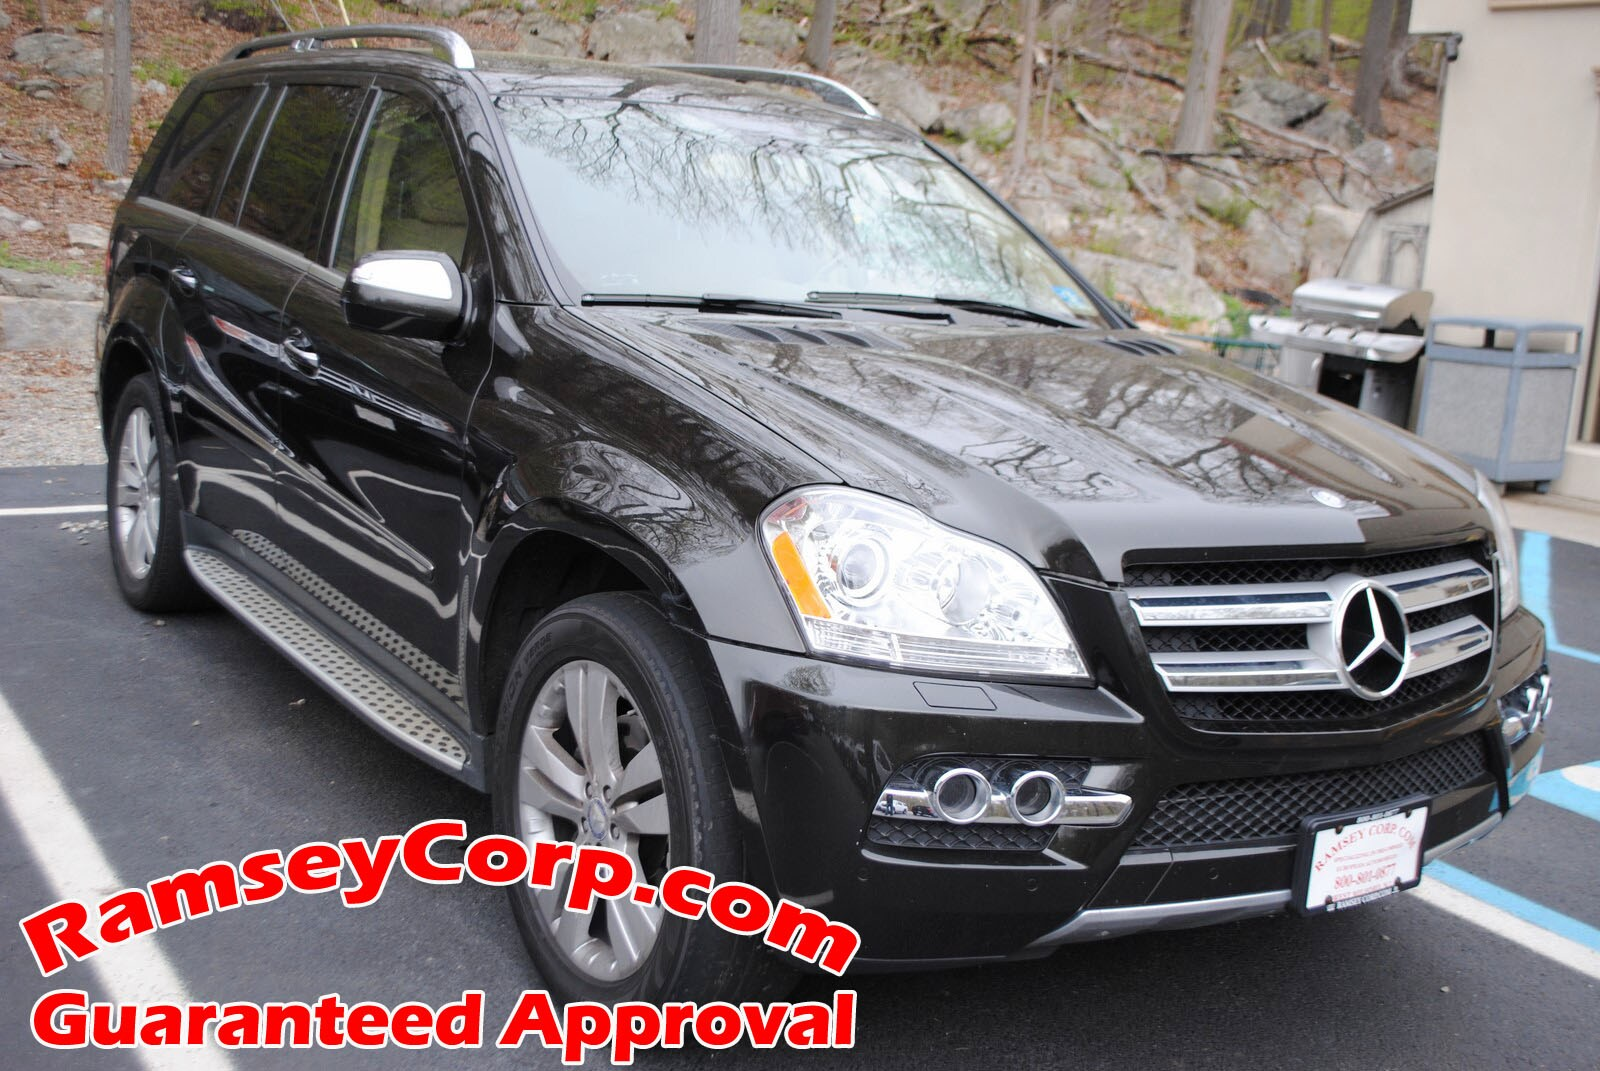 Used 2010 mercedes benz gl class for sale west milford nj for 2010 mercedes benz gl class suv